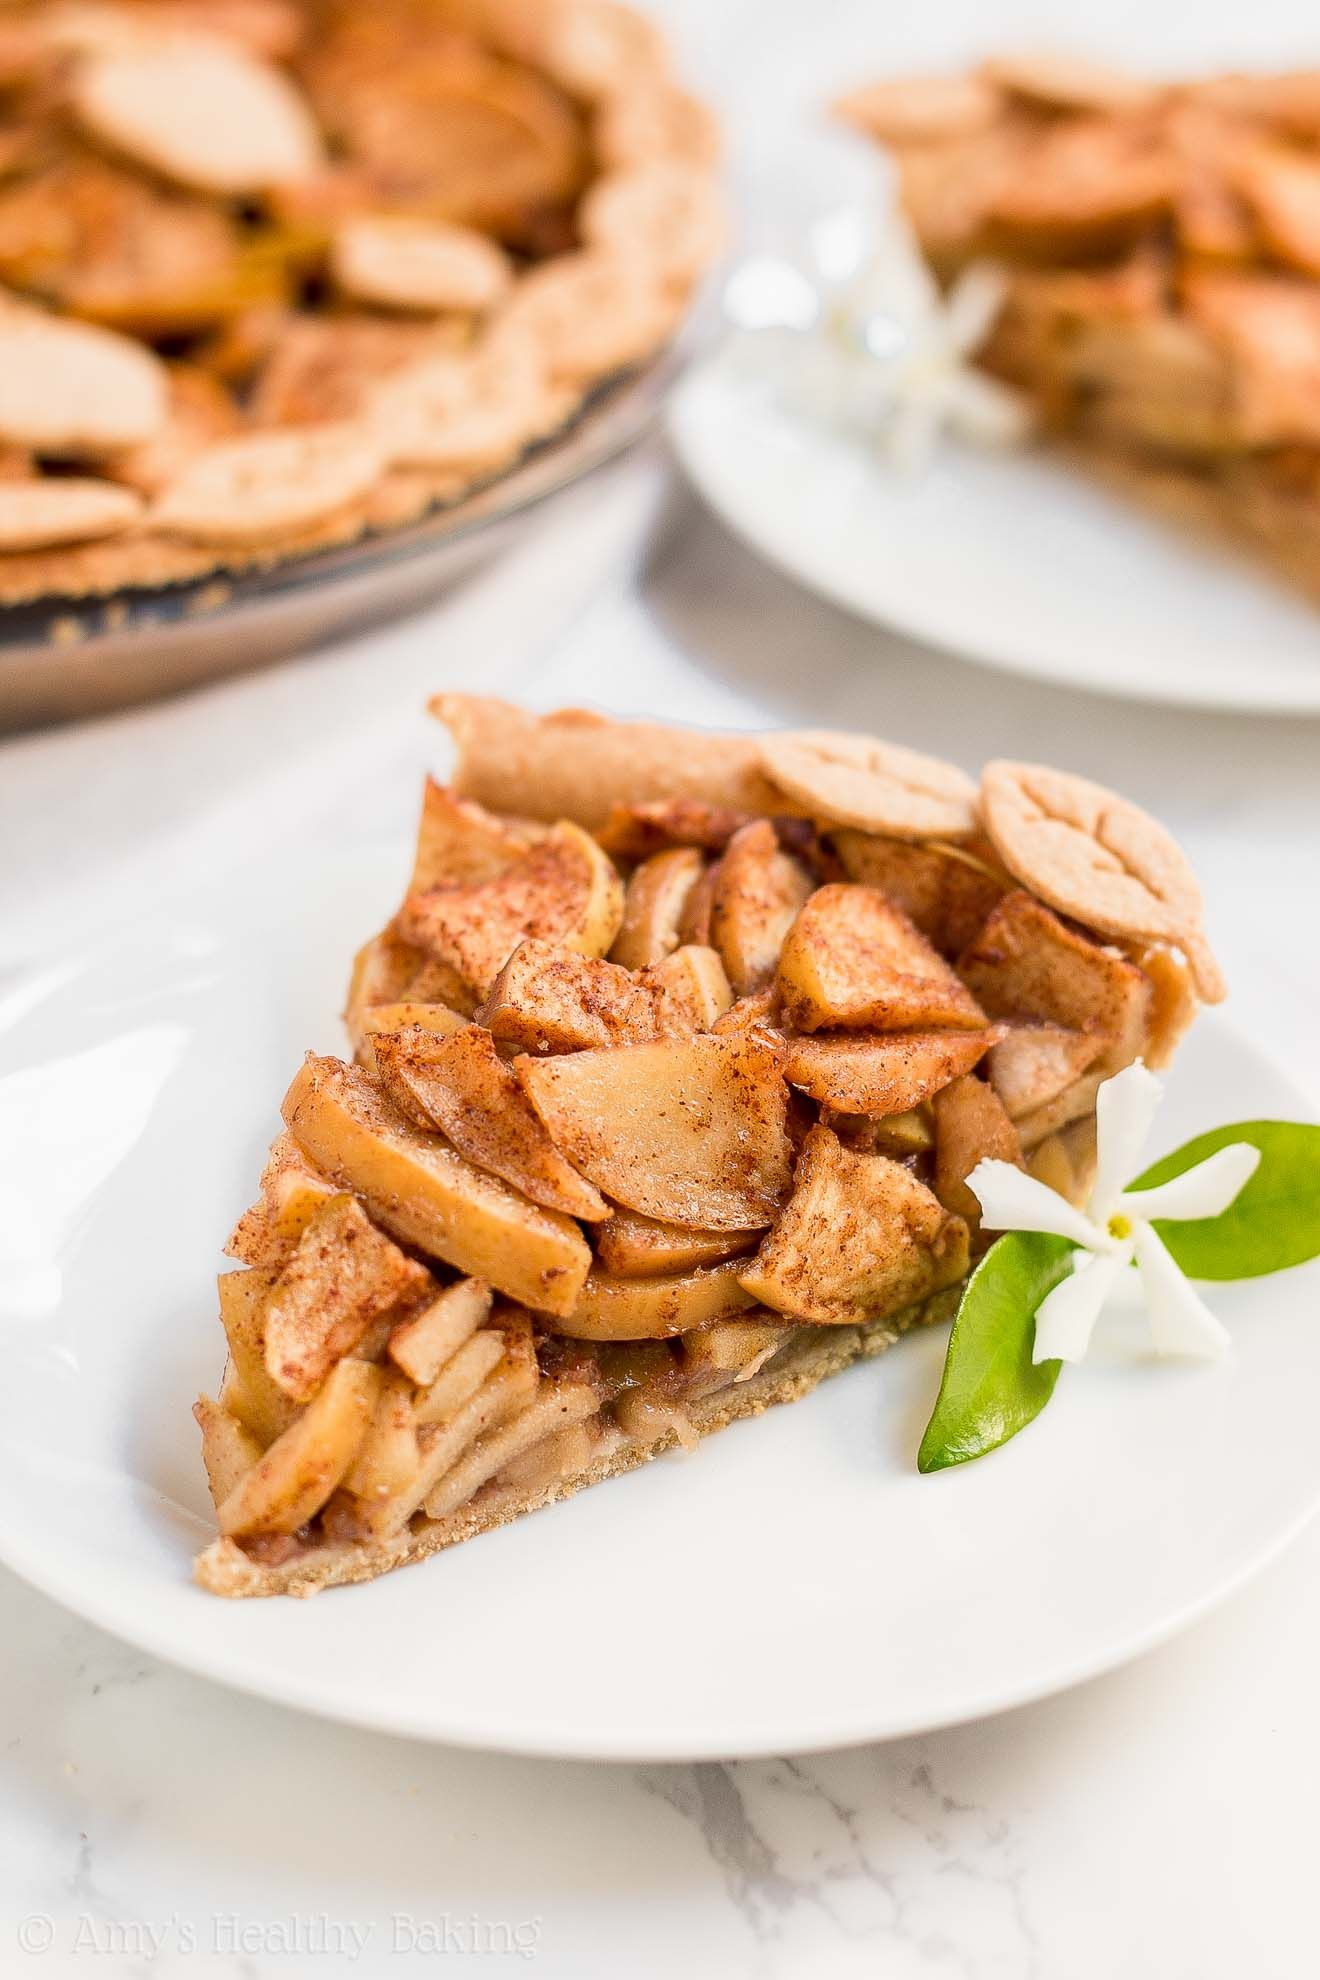 The Ultimate Healthy Apple Pie The Best Apple Pie I Ve Ever Had Only 129 Calories You Ll Never Use Another A Healthy Apple Pie Calories Apple Healthy Apple